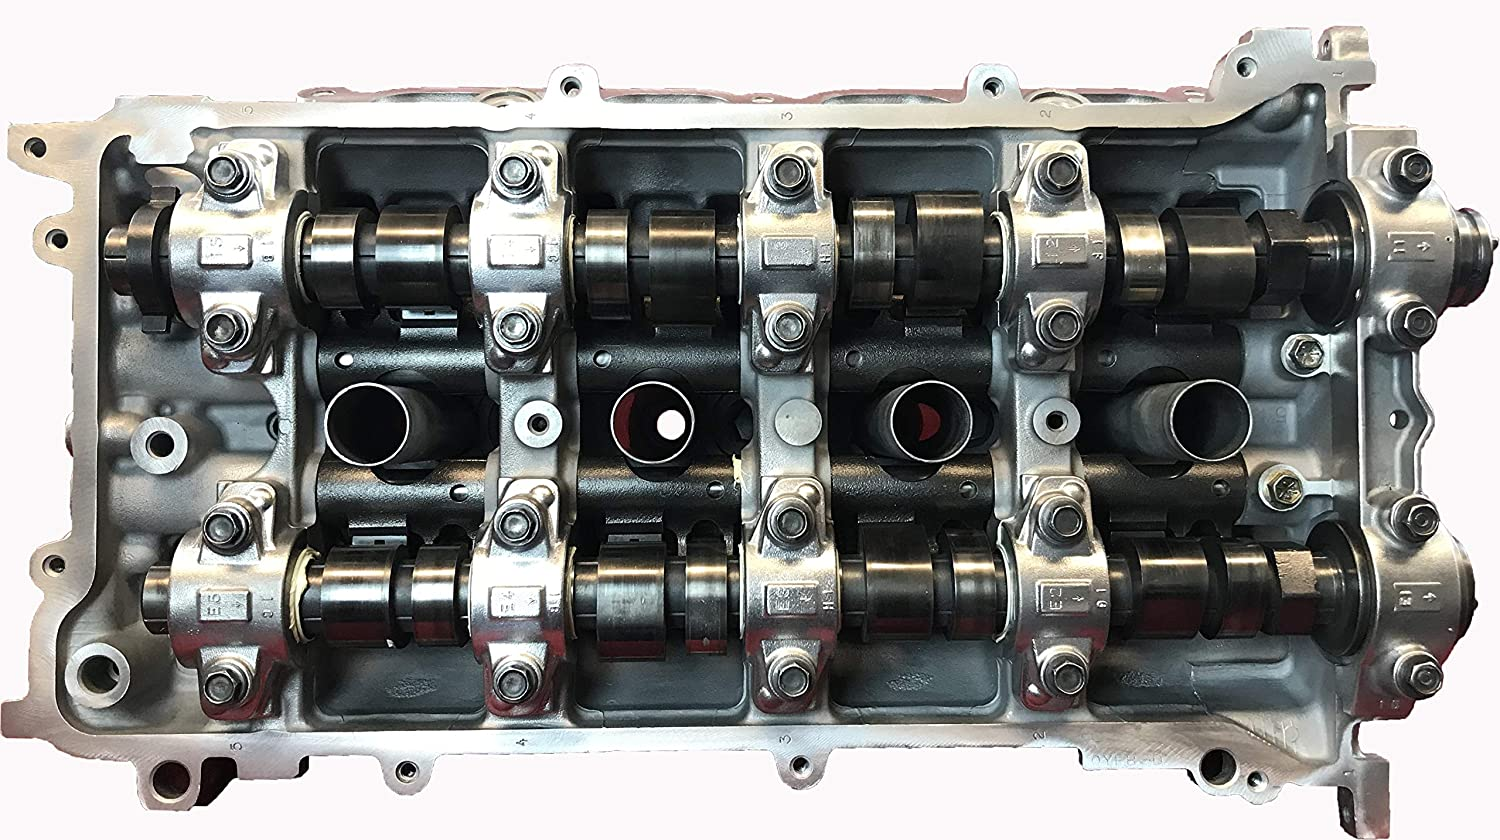 Super special price Remanufactured Cylinder Head for 4 years warranty Celica Matrix GTS Vibe Corolla